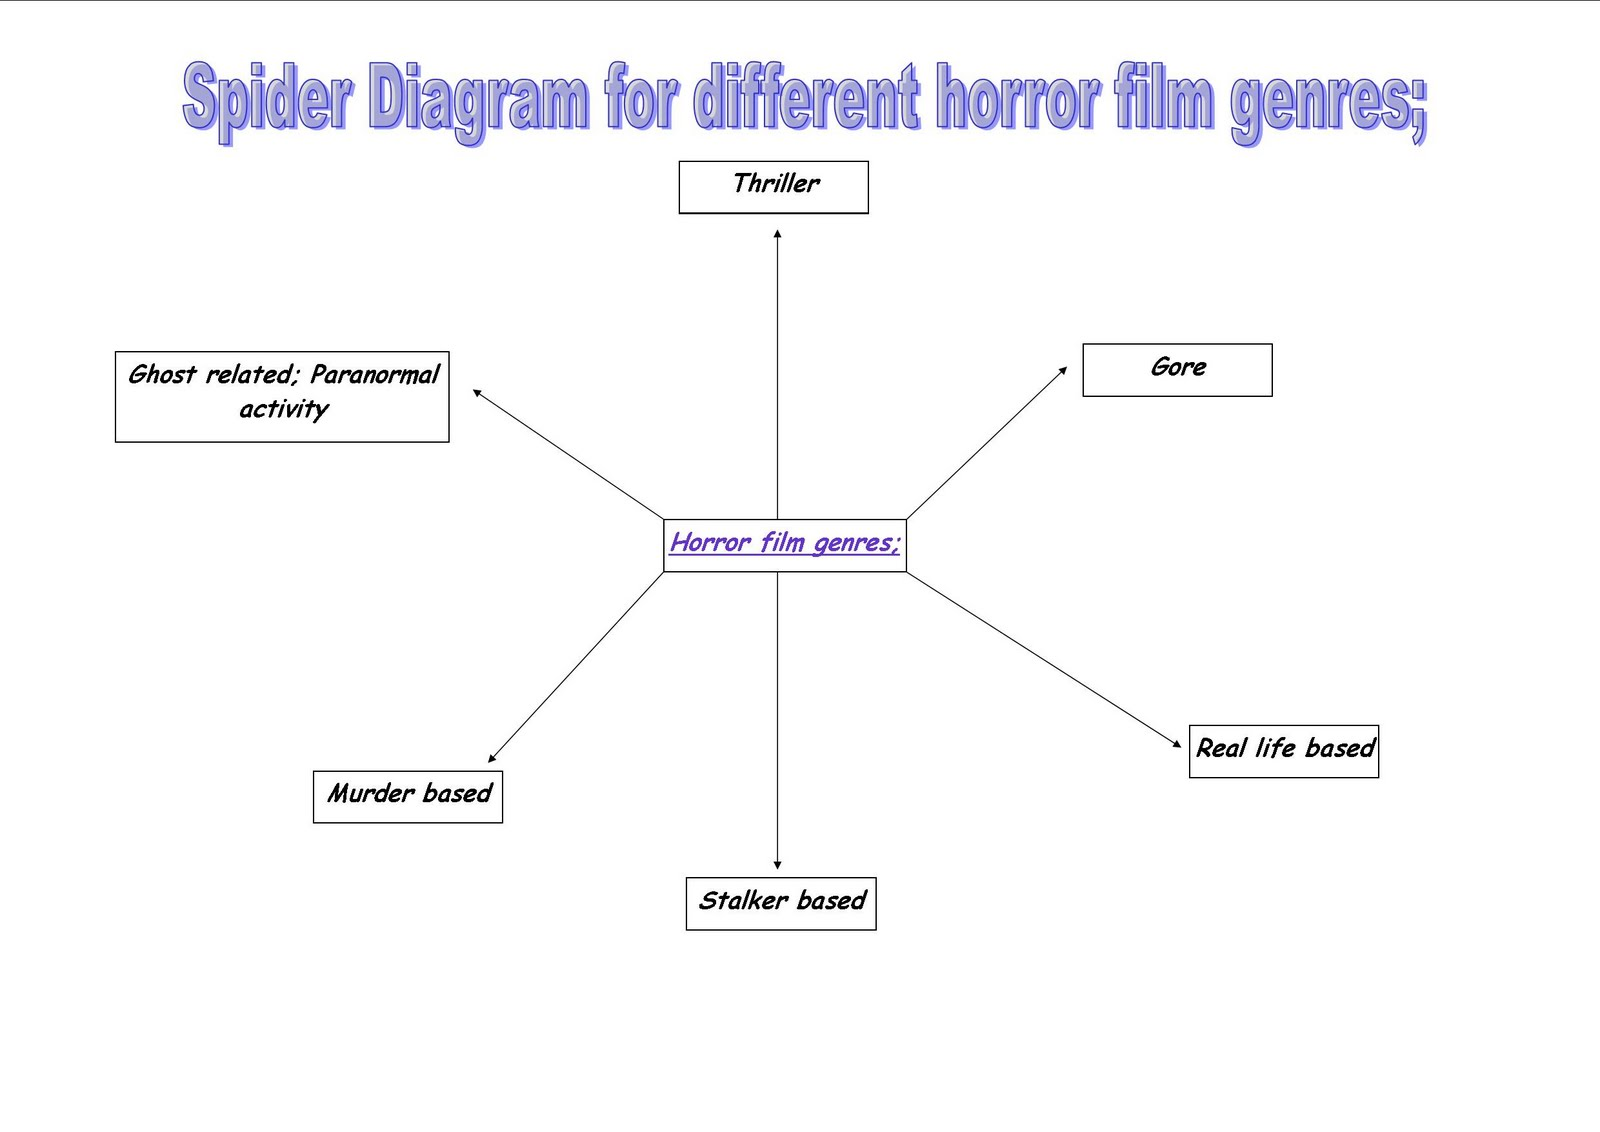 Research spider diagram of ideas for our horror film trailer a2 research spider diagram of ideas for our horror film trailer pooptronica Choice Image